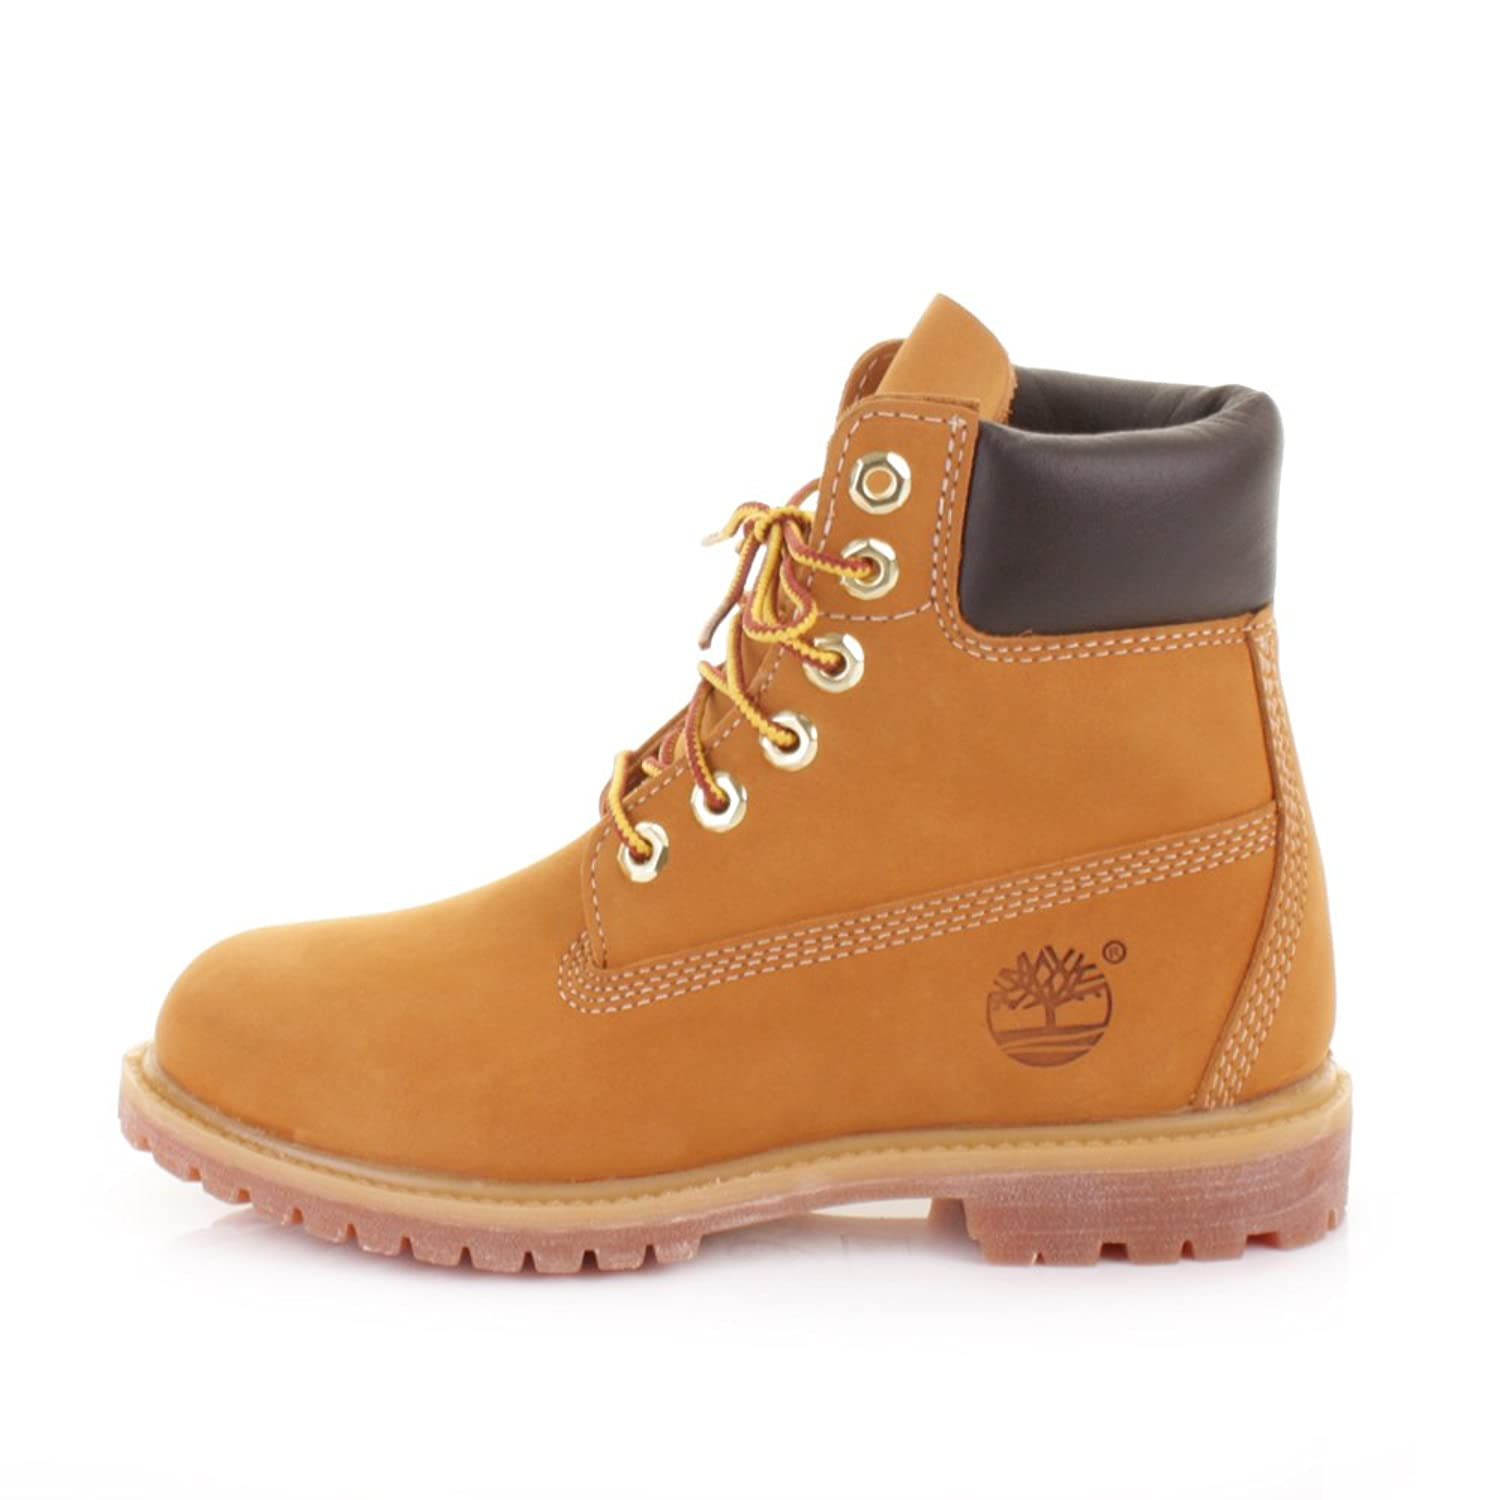 Bottes Timberland Pas Cher Noir Taille 4 LcBmj